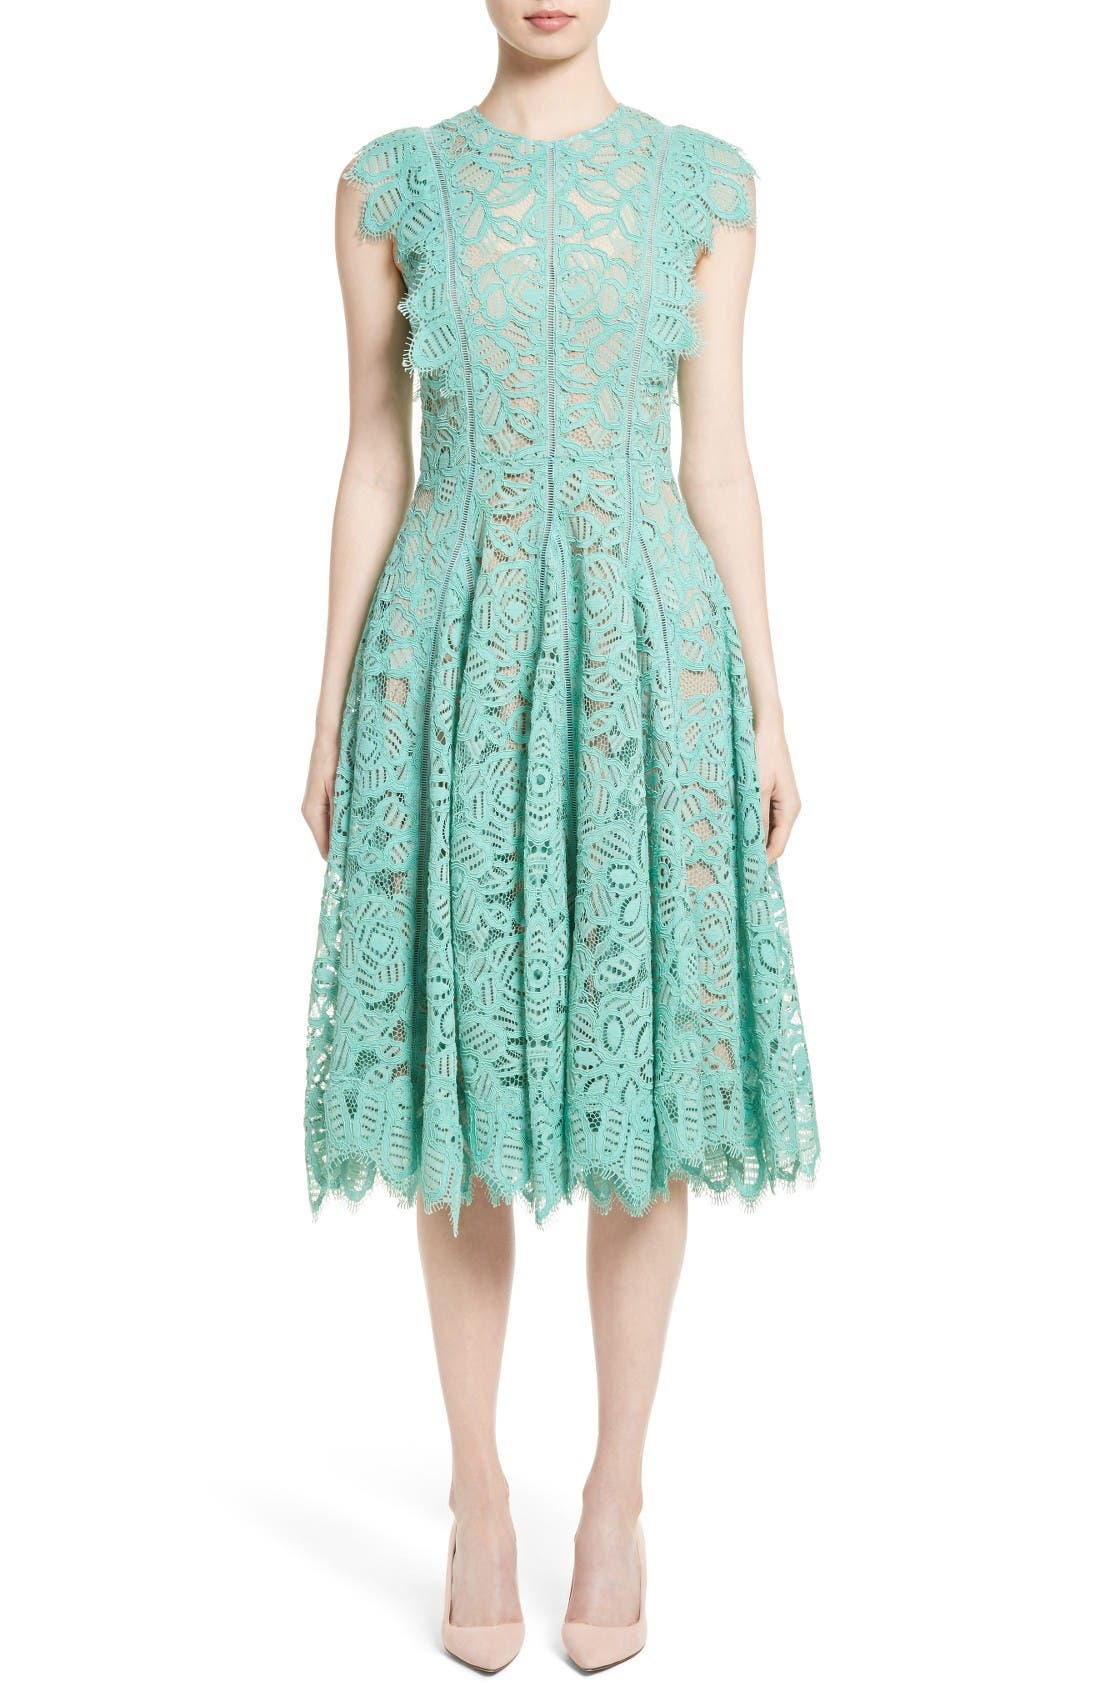 LELA ROSE Lace Fit & Flare Dress